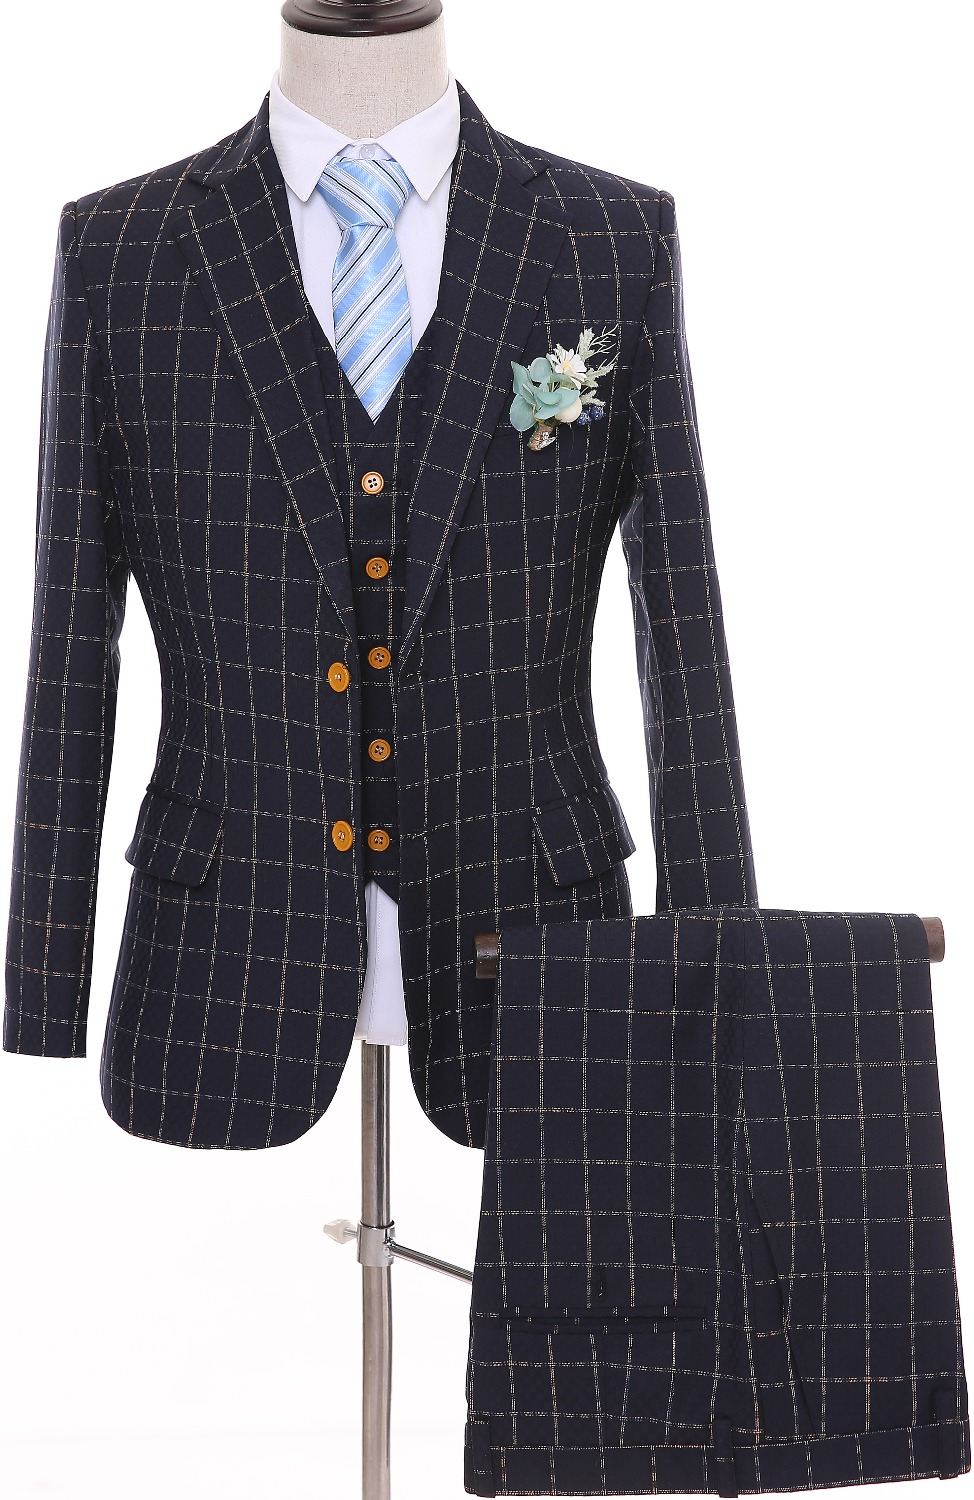 British Style Blue Plaid Men Suits Slim Fit Wedding Groom Tuxedos Notched Lapel Groomsmen Mens Wedding Suits Prom Wearing Suit